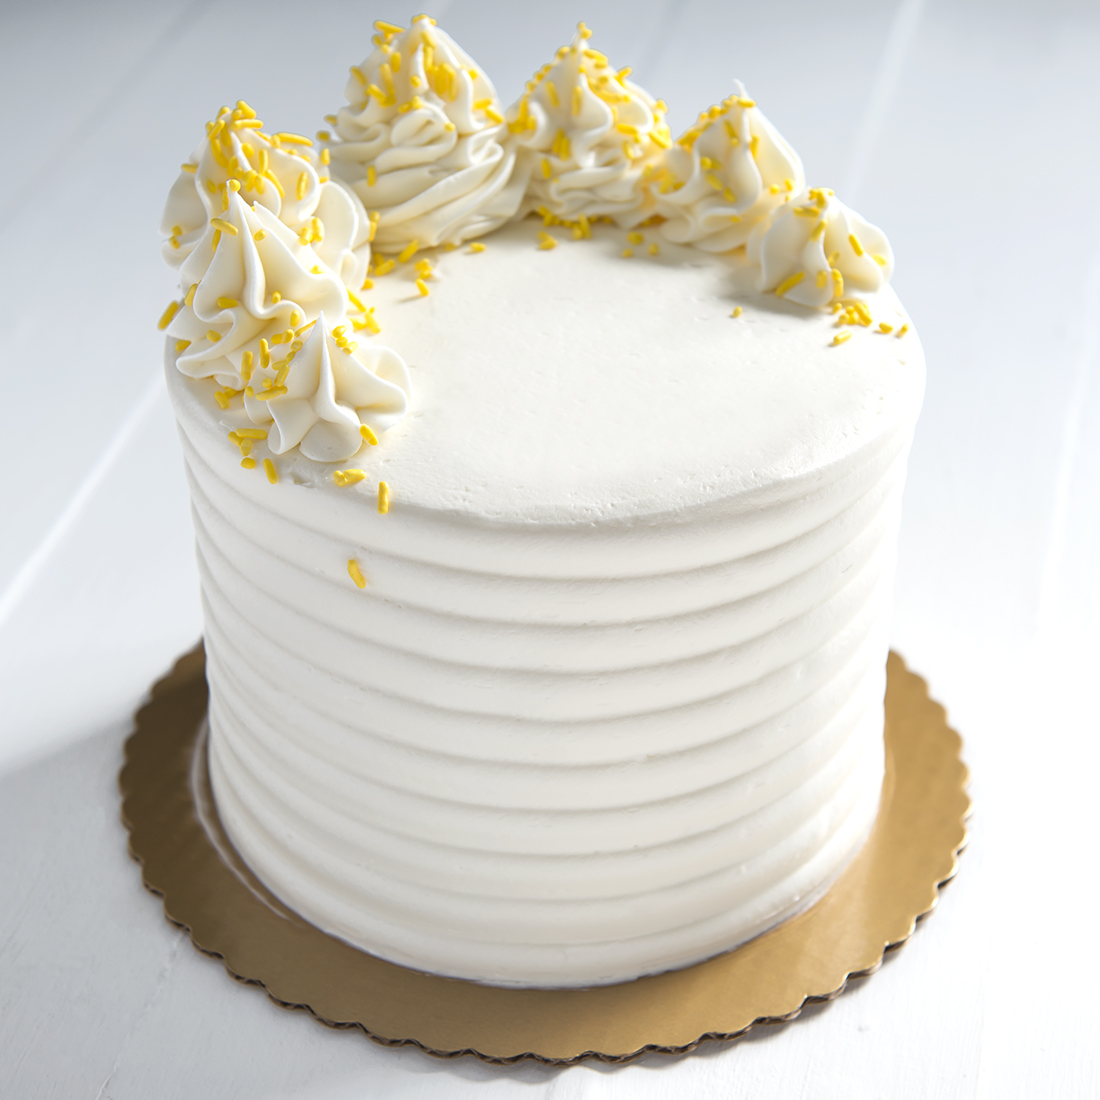 Lemon Drop - Lemon cake filled and frosted with lemon buttercream, yellow sprinkles6